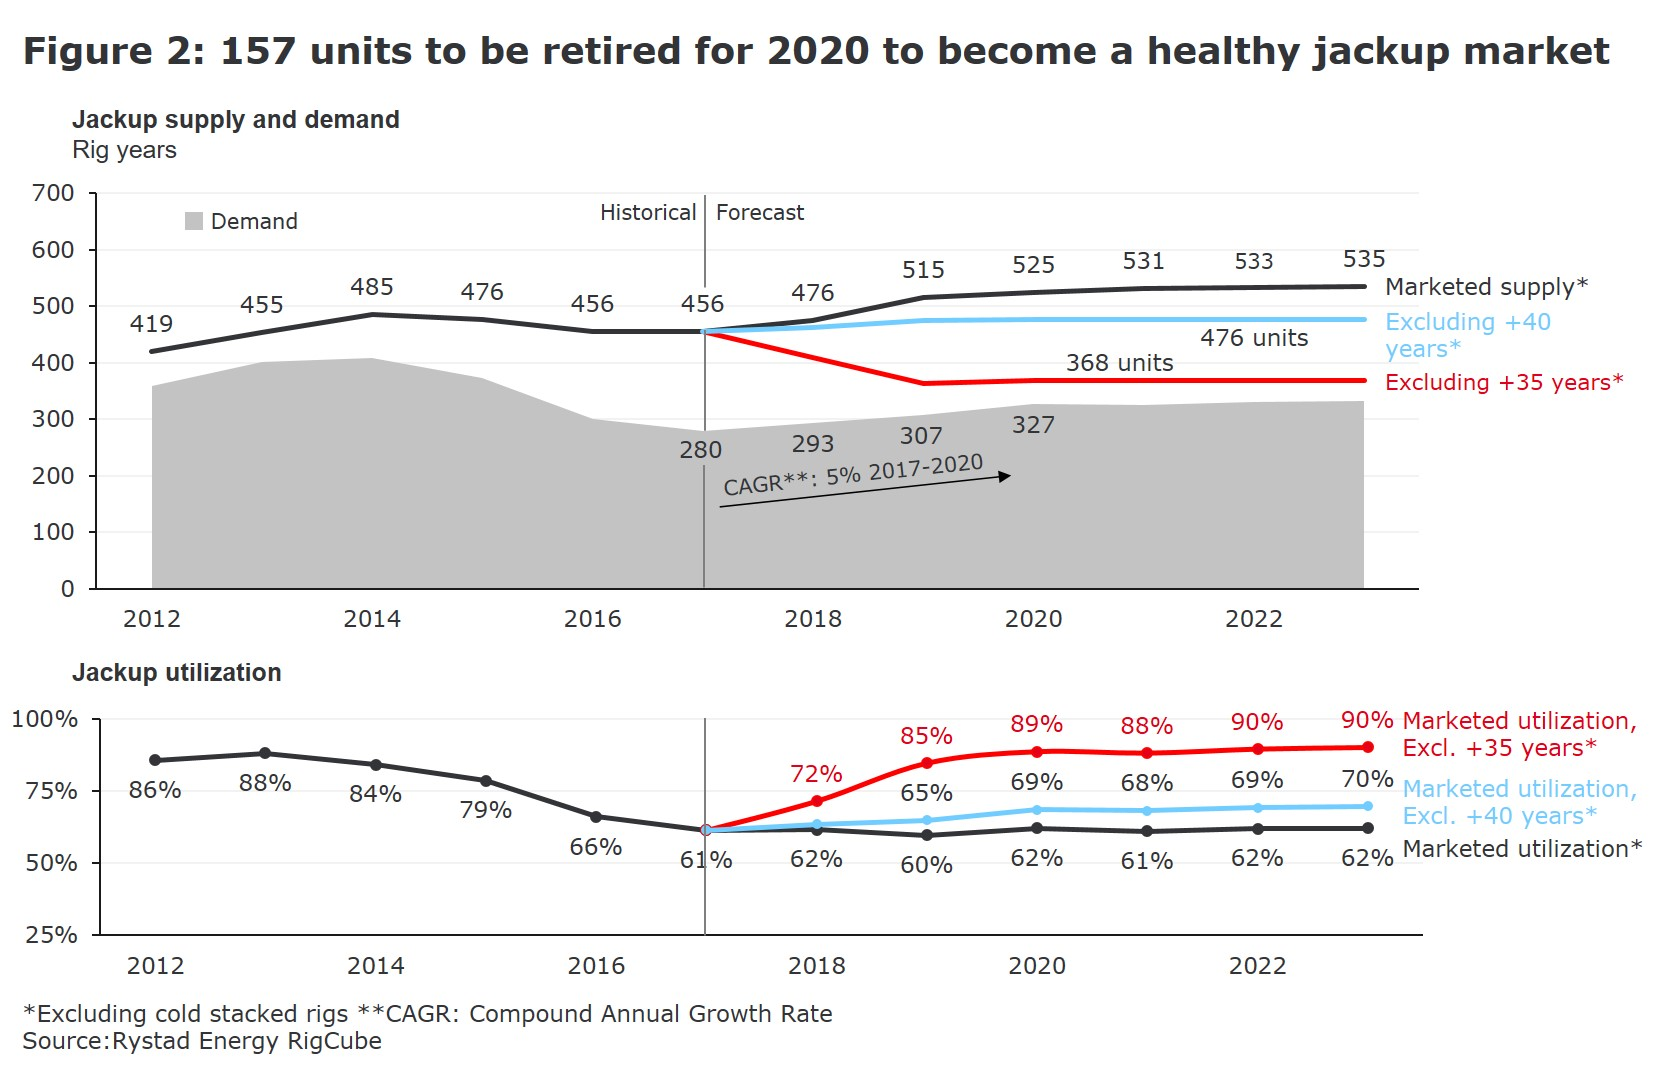 Figure 2: A graph showing 157 units to be retired for 2020 to become a healthy jackup market from 2012 to 2022